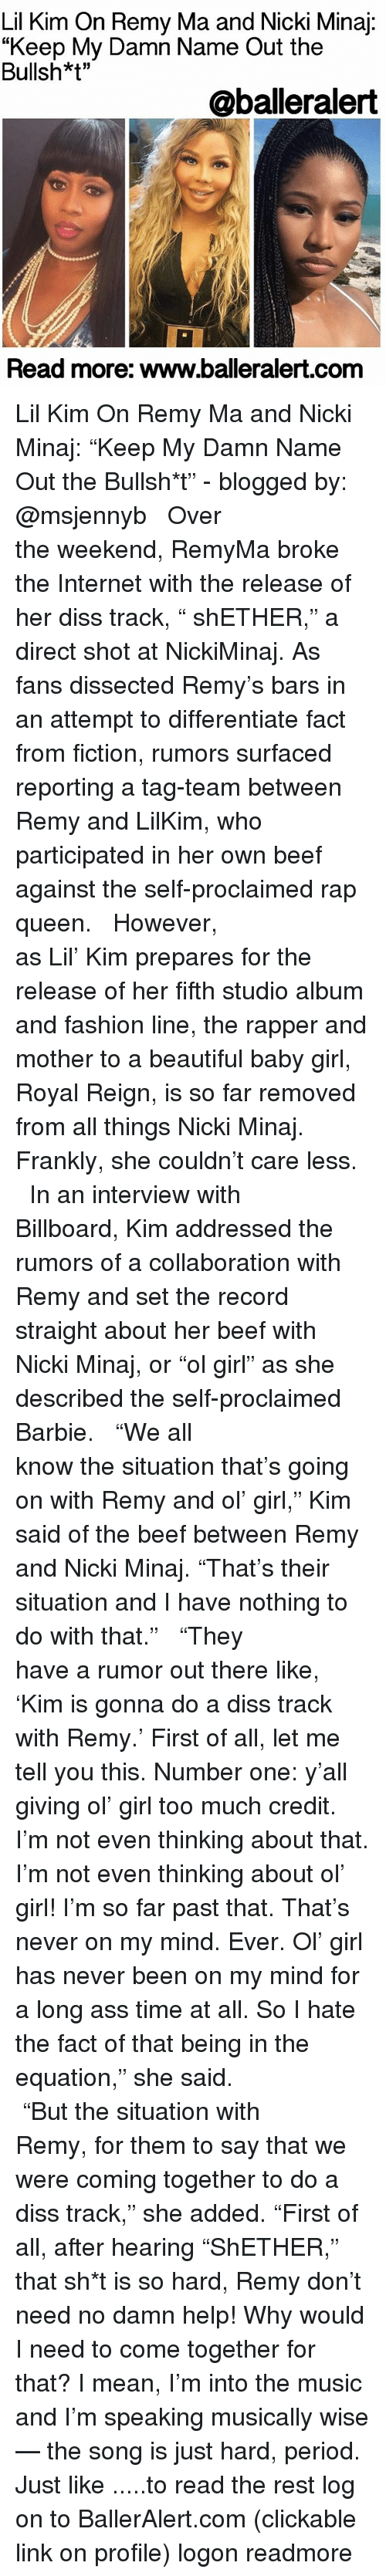 """Dissed: Lil Kim On Remy Ma and Nicki Minaj  """"Keep My Damn Name Out the  Bullsh*t""""  @balleralert  Read more: www.balleralert.com Lil Kim On Remy Ma and Nicki Minaj: """"Keep My Damn Name Out the Bullsh*t"""" - blogged by: @msjennyb ⠀⠀⠀⠀⠀⠀⠀⠀⠀ ⠀⠀⠀⠀⠀⠀⠀⠀⠀ Over the weekend, RemyMa broke the Internet with the release of her diss track, """" shETHER,"""" a direct shot at NickiMinaj. As fans dissected Remy's bars in an attempt to differentiate fact from fiction, rumors surfaced reporting a tag-team between Remy and LilKim, who participated in her own beef against the self-proclaimed rap queen. ⠀⠀⠀⠀⠀⠀⠀⠀⠀ ⠀⠀⠀⠀⠀⠀⠀⠀⠀ However, as Lil' Kim prepares for the release of her fifth studio album and fashion line, the rapper and mother to a beautiful baby girl, Royal Reign, is so far removed from all things Nicki Minaj. Frankly, she couldn't care less. ⠀⠀⠀⠀⠀⠀⠀⠀⠀ ⠀⠀⠀⠀⠀⠀⠀⠀⠀ In an interview with Billboard, Kim addressed the rumors of a collaboration with Remy and set the record straight about her beef with Nicki Minaj, or """"ol girl"""" as she described the self-proclaimed Barbie. ⠀⠀⠀⠀⠀⠀⠀⠀⠀ ⠀⠀⠀⠀⠀⠀⠀⠀⠀ """"We all know the situation that's going on with Remy and ol' girl,"""" Kim said of the beef between Remy and Nicki Minaj. """"That's their situation and I have nothing to do with that."""" ⠀⠀⠀⠀⠀⠀⠀⠀⠀ ⠀⠀⠀⠀⠀⠀⠀⠀⠀ """"They have a rumor out there like, 'Kim is gonna do a diss track with Remy.' First of all, let me tell you this. Number one: y'all giving ol' girl too much credit. I'm not even thinking about that. I'm not even thinking about ol' girl! I'm so far past that. That's never on my mind. Ever. Ol' girl has never been on my mind for a long ass time at all. So I hate the fact of that being in the equation,"""" she said. ⠀⠀⠀⠀⠀⠀⠀⠀⠀ ⠀⠀⠀⠀⠀⠀⠀⠀⠀ """"But the situation with Remy, for them to say that we were coming together to do a diss track,"""" she added. """"First of all, after hearing """"ShETHER,"""" that sh*t is so hard, Remy don't need no damn help! Why would I need to come together for that? I mean, I'm into the music and I'm speaking musi"""